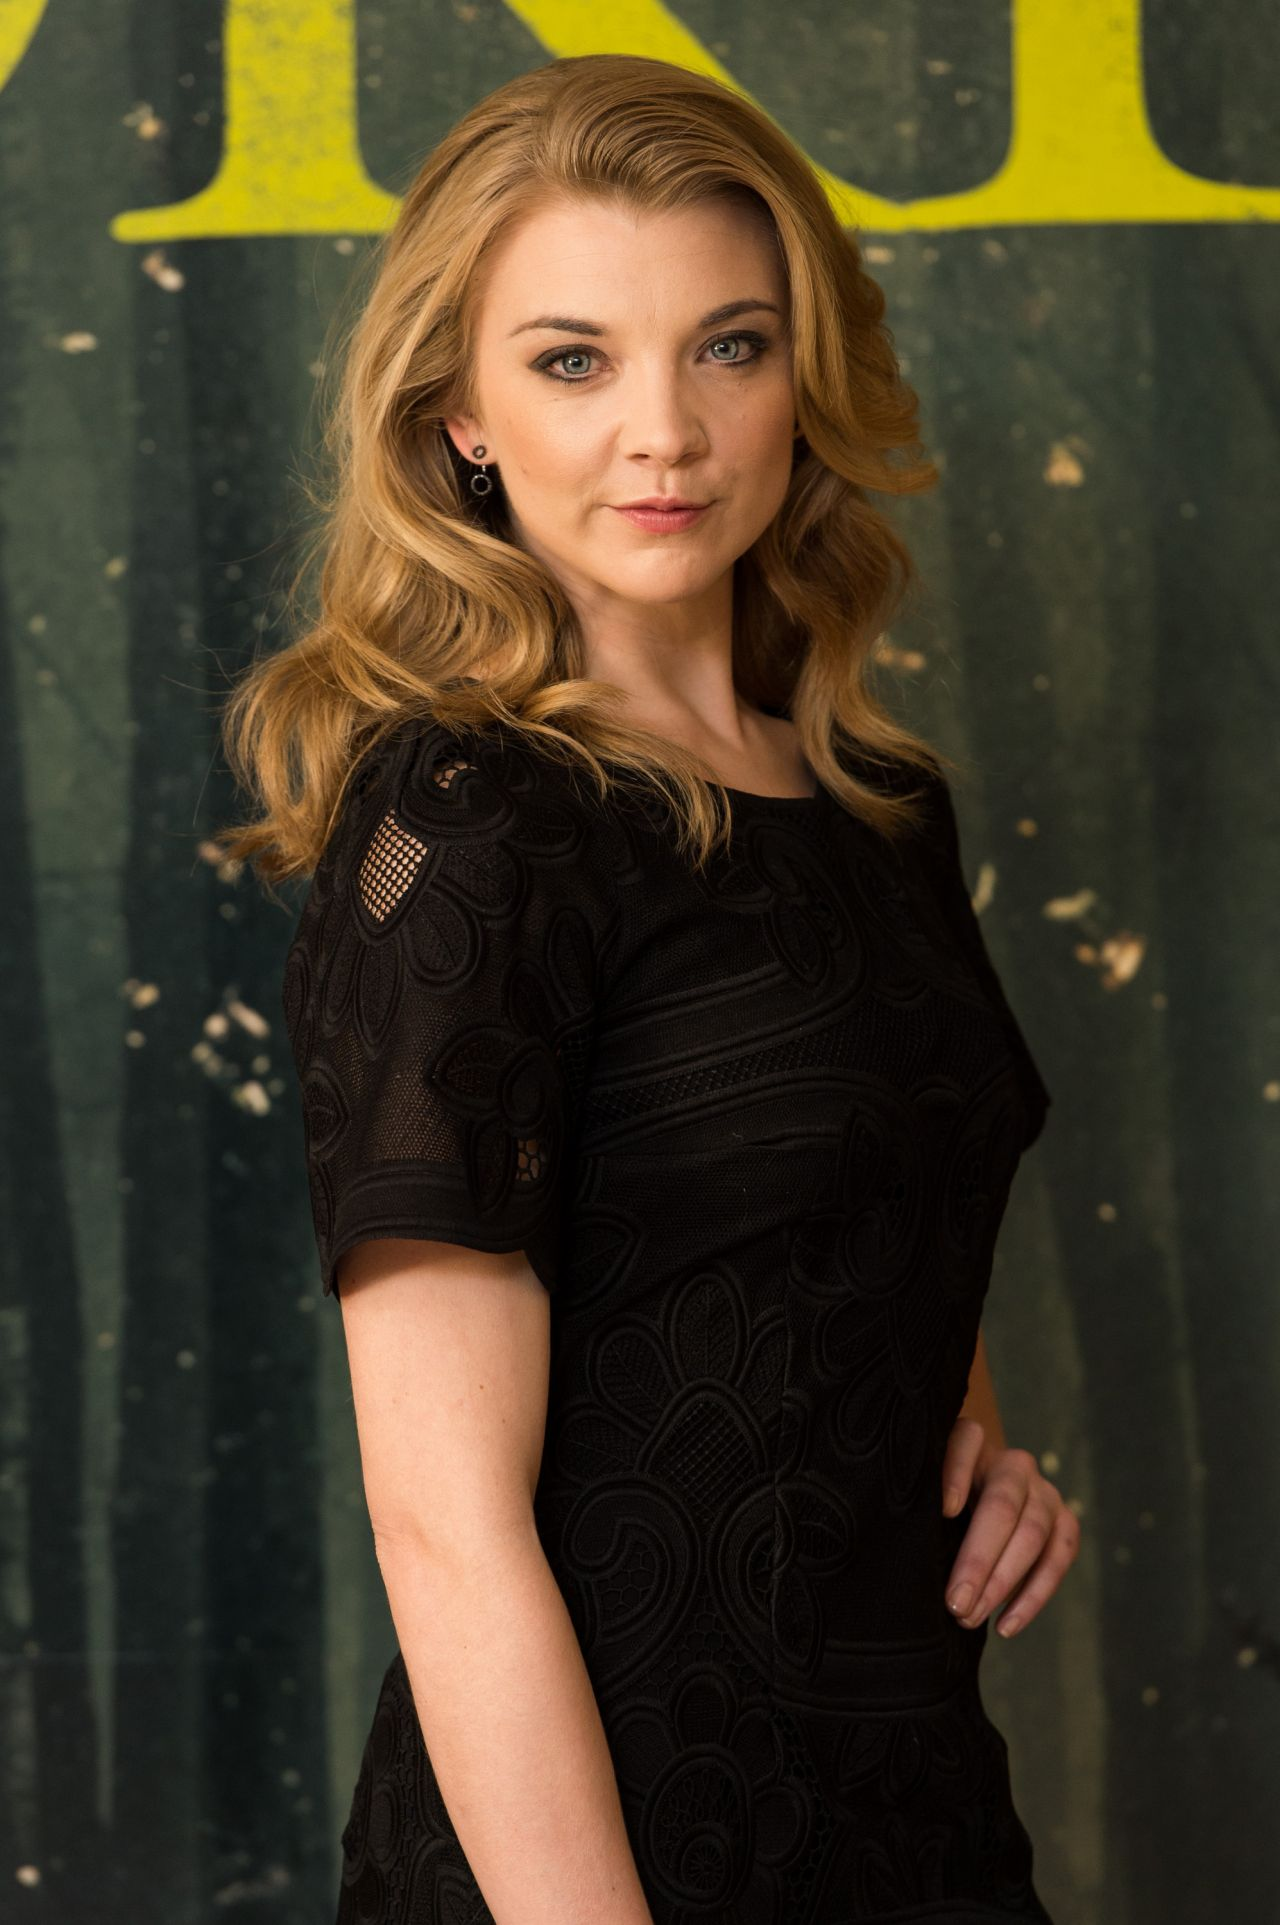 natalie-dormer-the-forest-photocall-in-london-uk-2